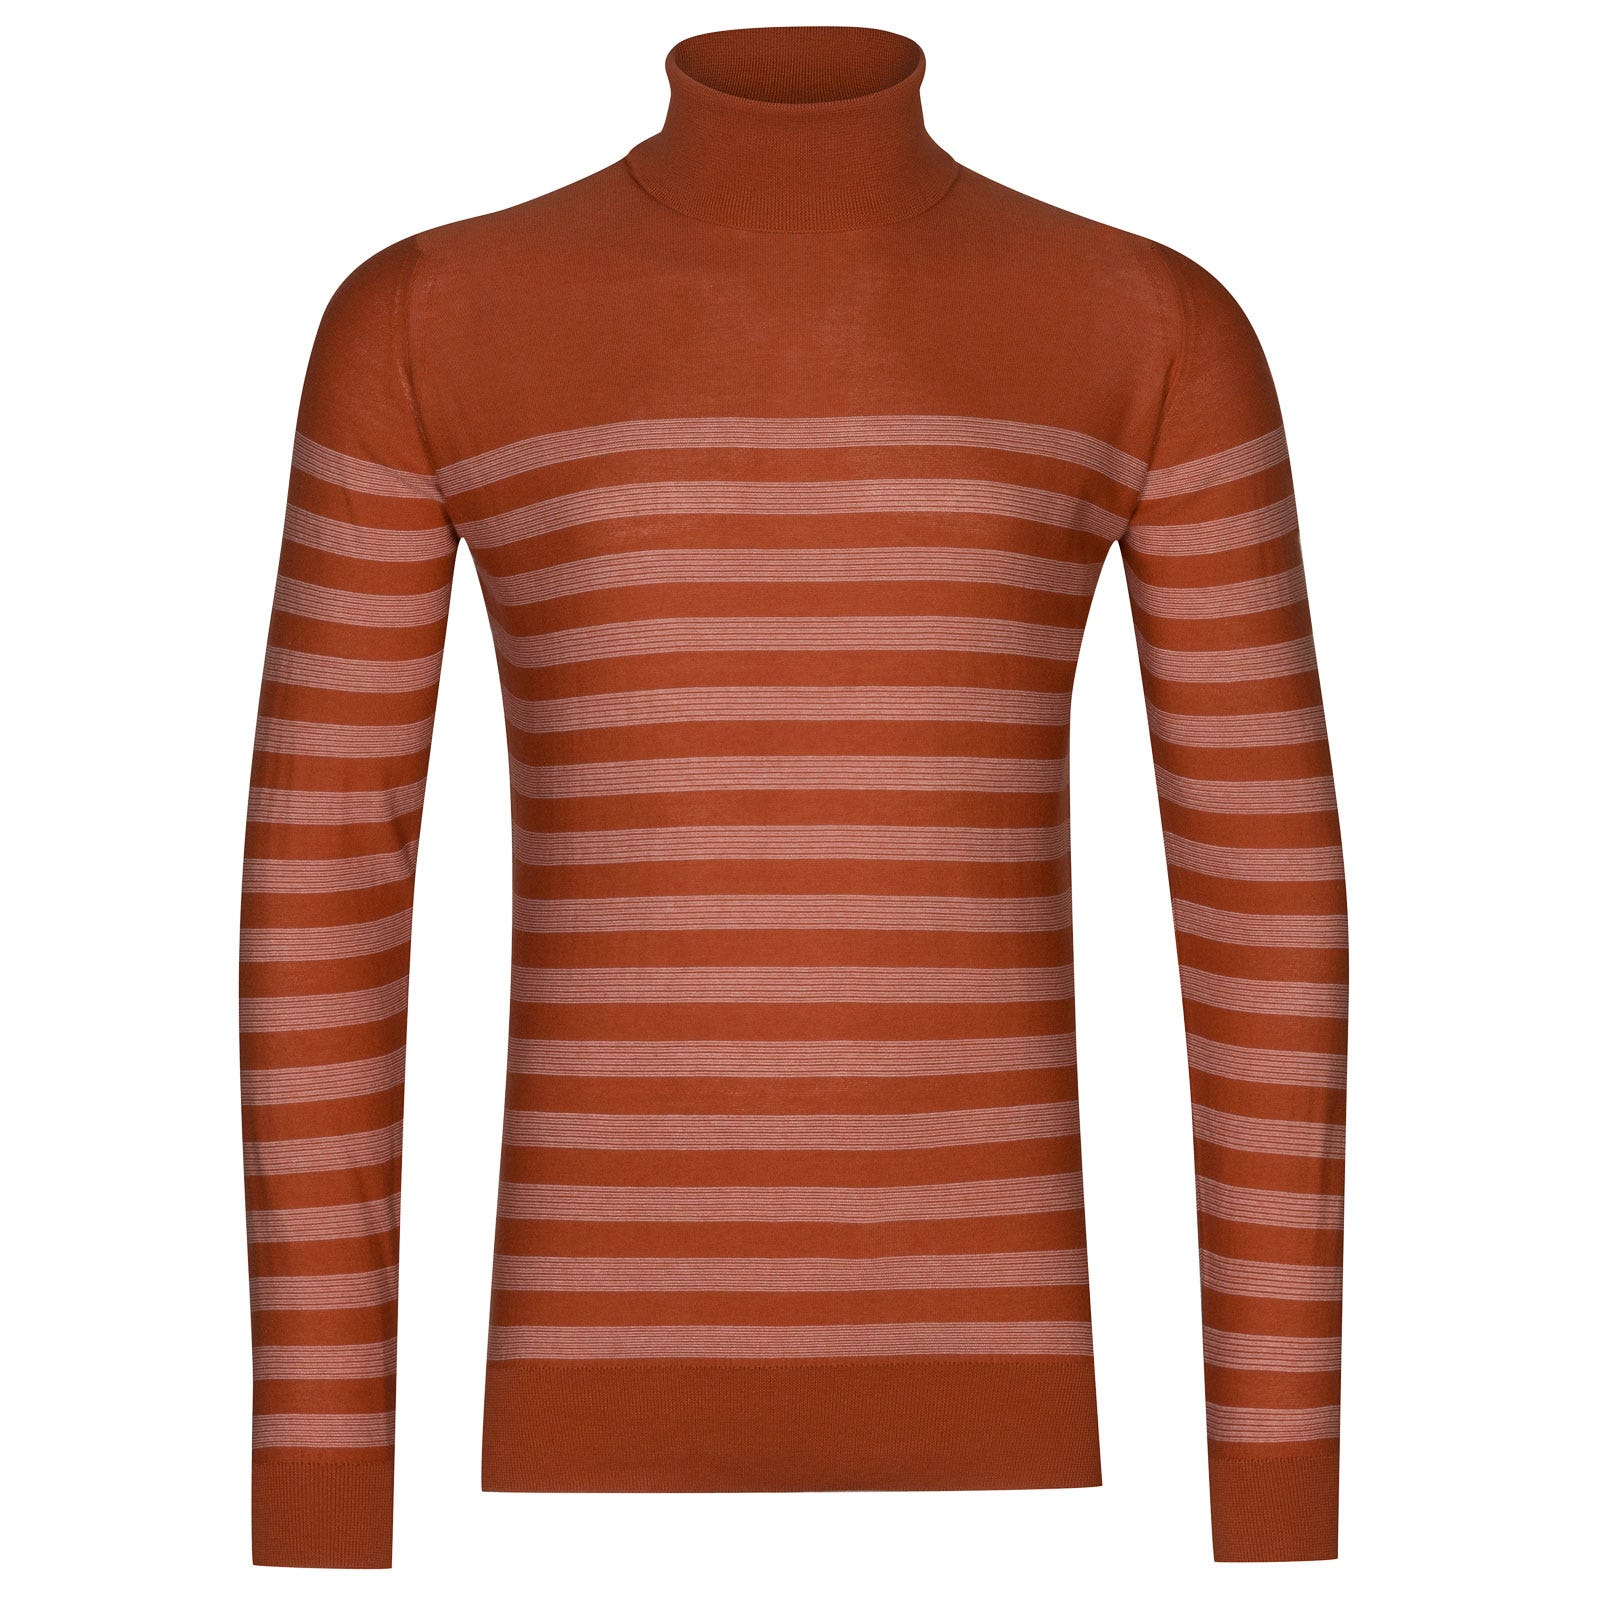 John Smedley tenby Sea Island Cotton Sweater in Flare Orange/White-S